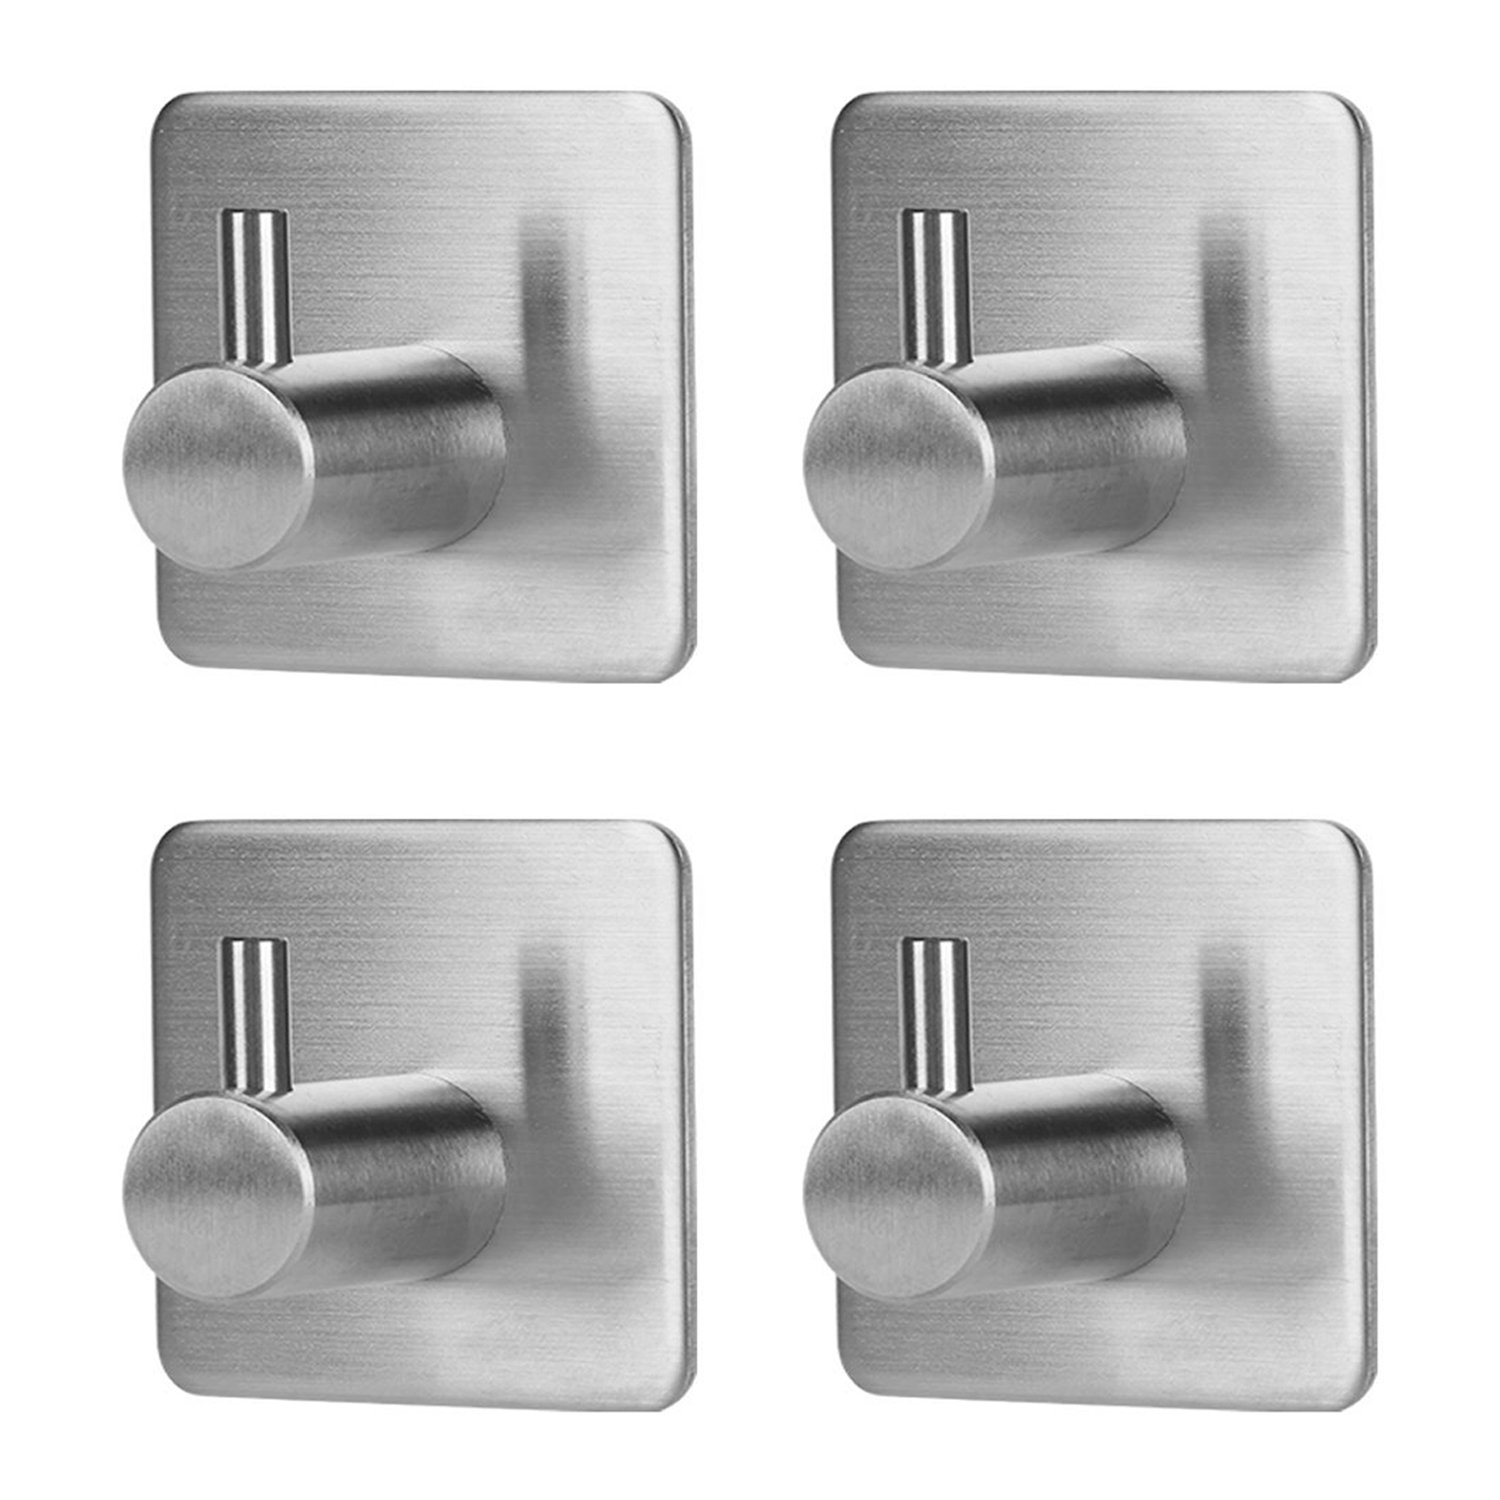 Jekoo Towel Hooks Self Adhesive, Heavy Duty Coat Hooks with Stainless Steel Ultra Strong Waterproof for Bathroom Kitchen and Garage Organizer - (4 Pack)